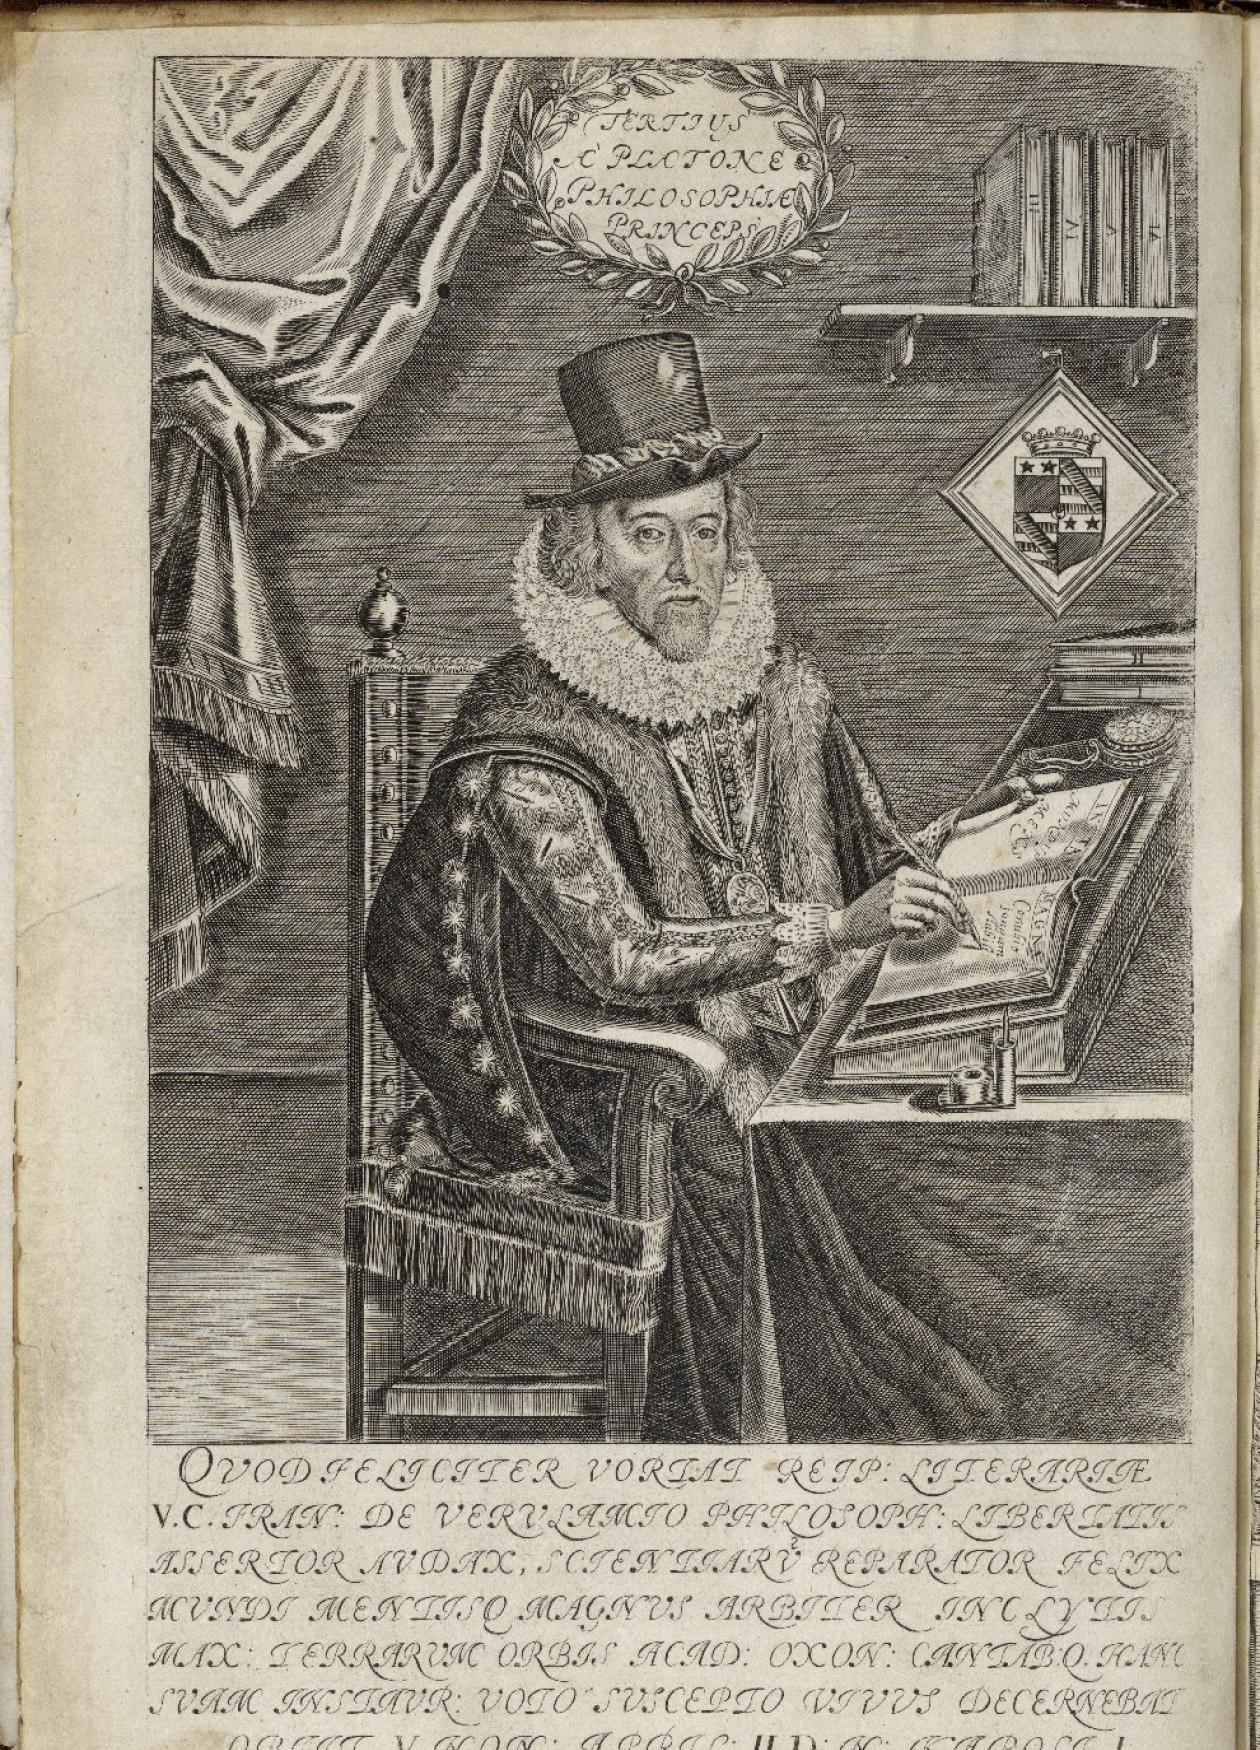 Sir Francis Bacon sitting at a desk, writing with a quill pen, dressed in a robe, fur scarf, top hat, and high ruffled lace collar